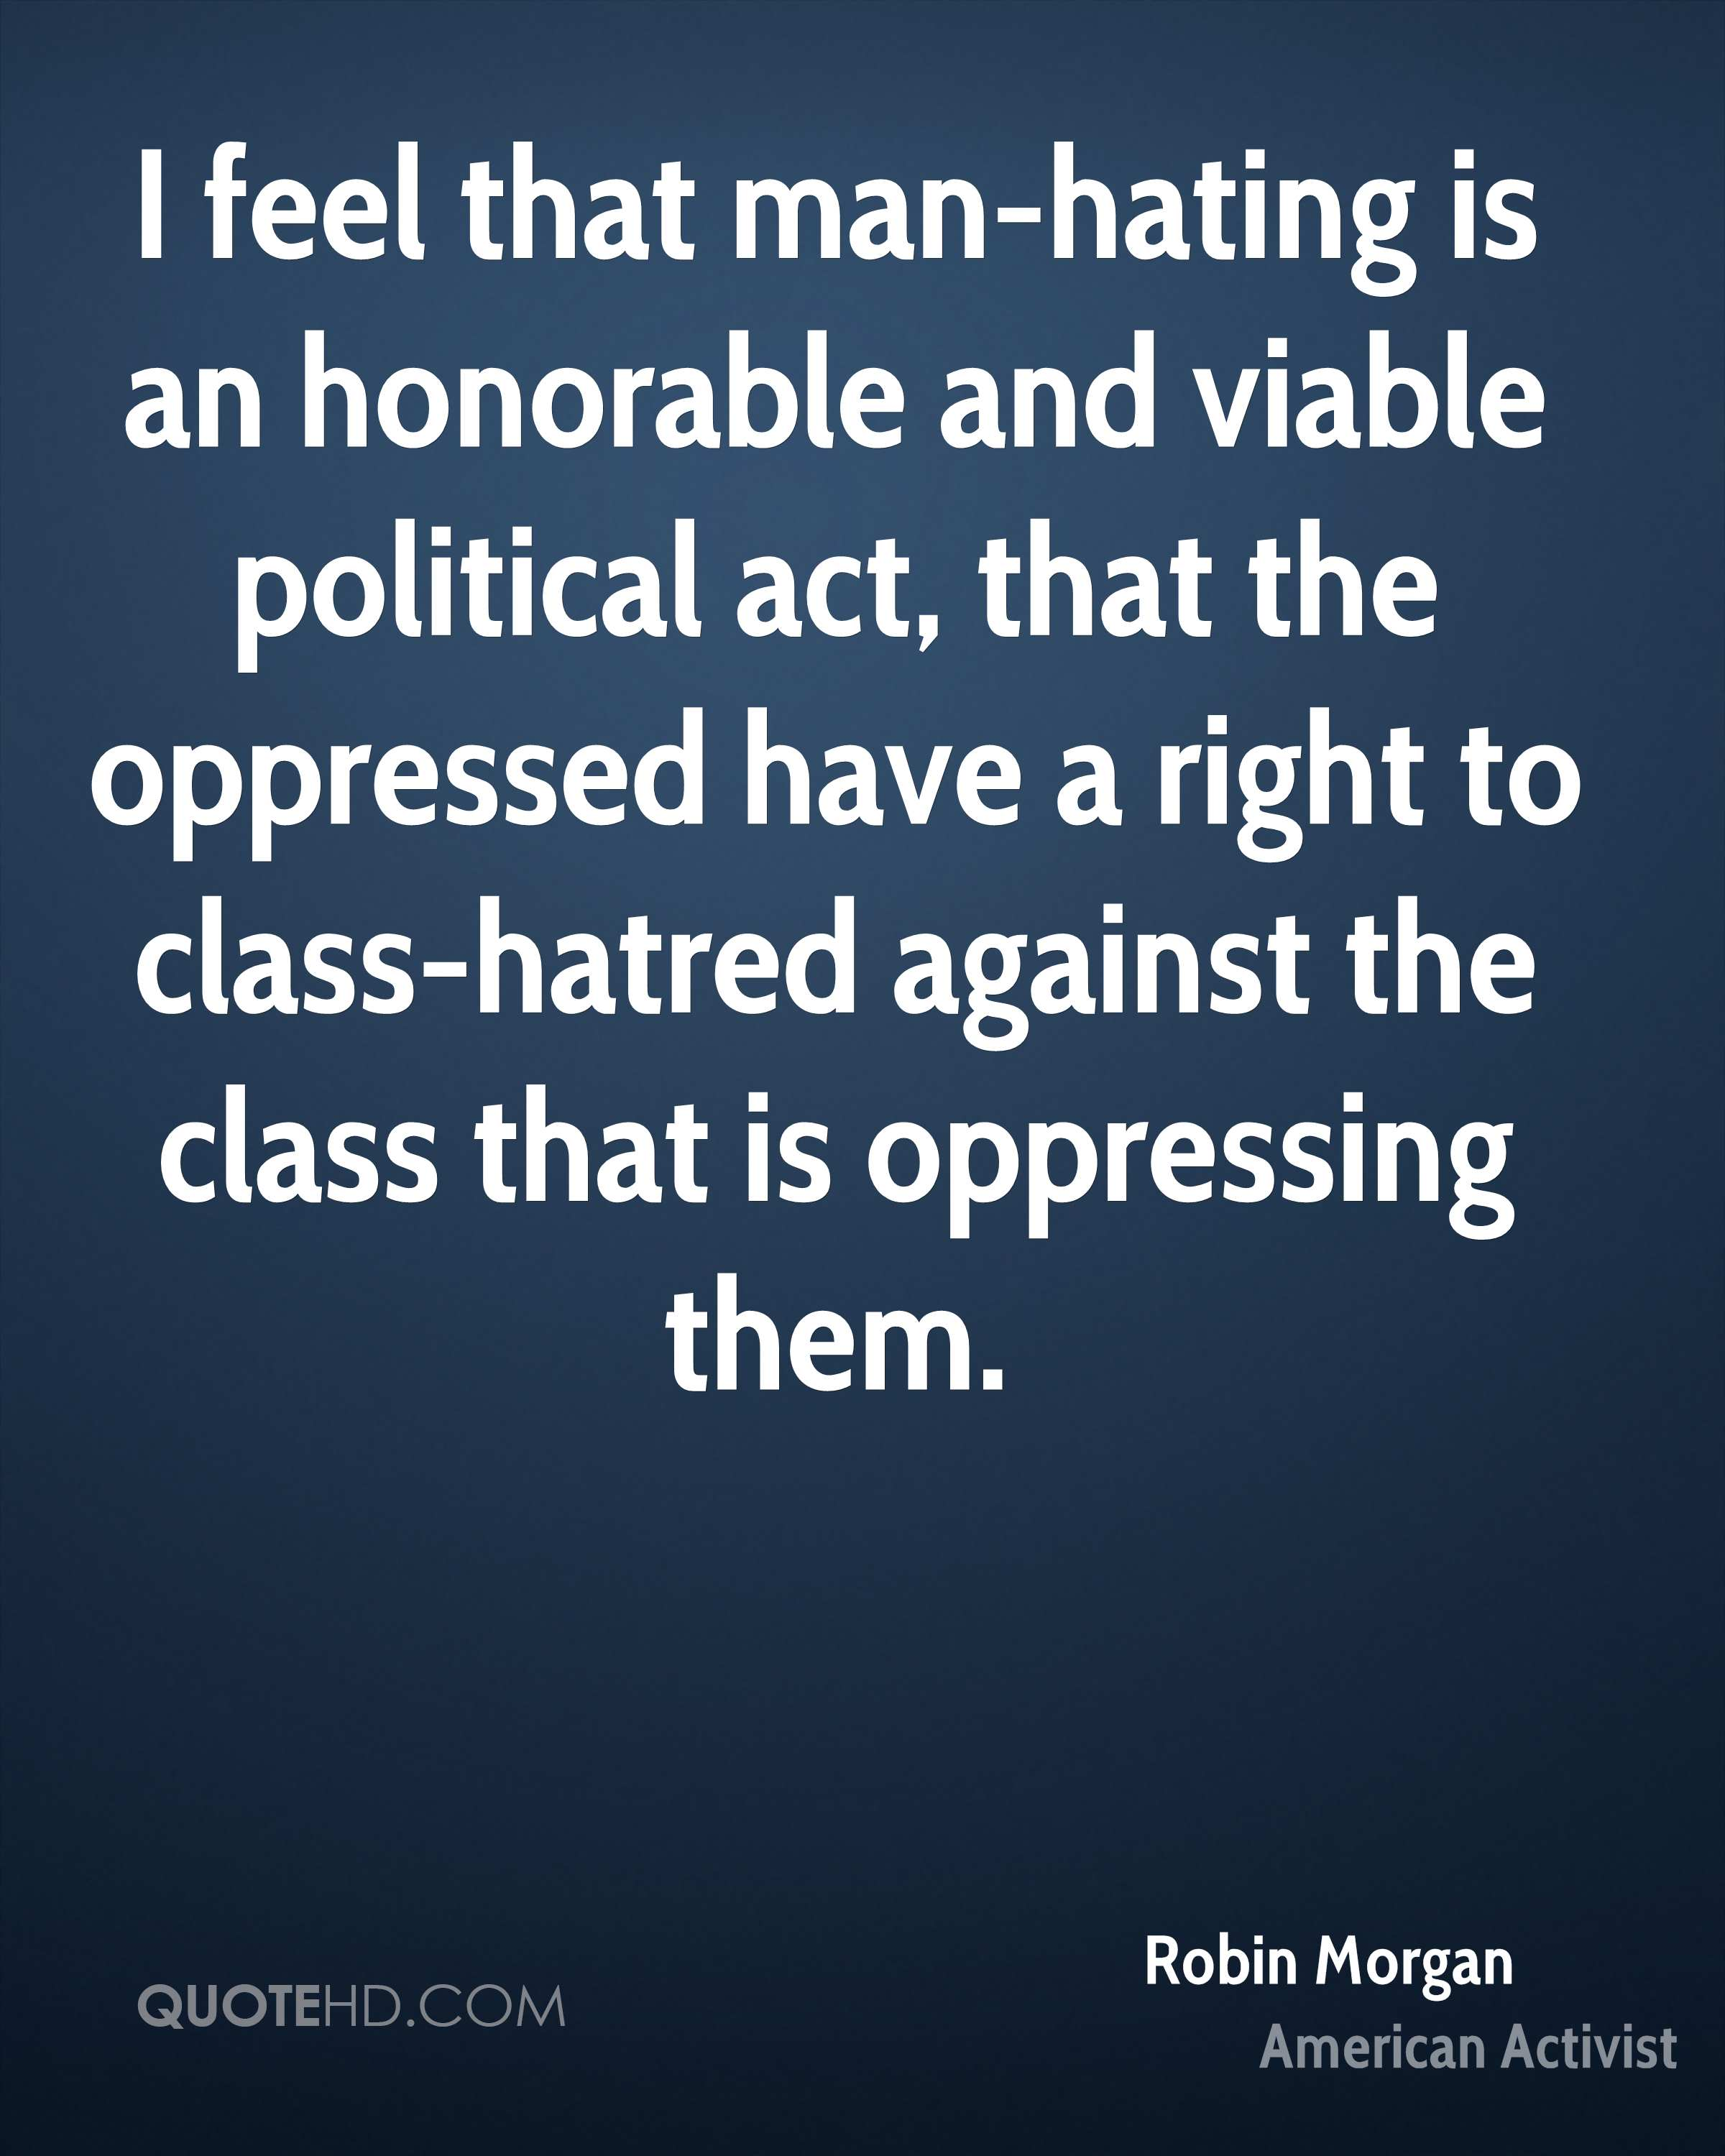 I feel that man-hating is an honorable and viable political act, that the oppressed have a right to class-hatred against the class that is oppressing them.